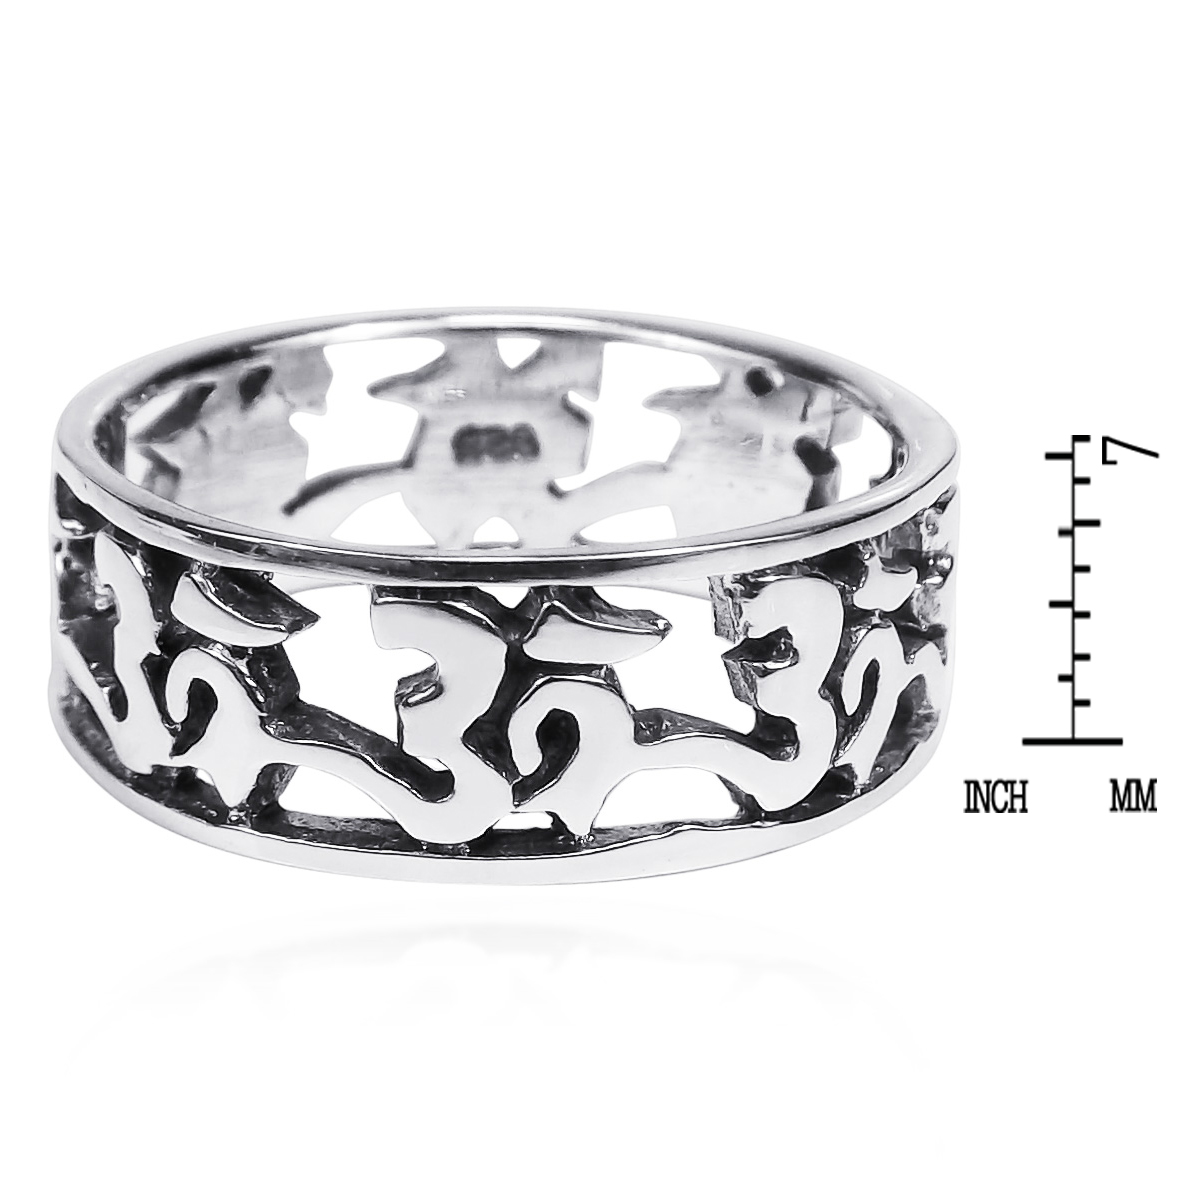 Peaceful eternity aum or ohm symbol 925 silver band ring 6 aeravida set in sterling silver the symbol ohm or aum links together in mystical essence to form the band of this ring the symbol represents brahman biocorpaavc